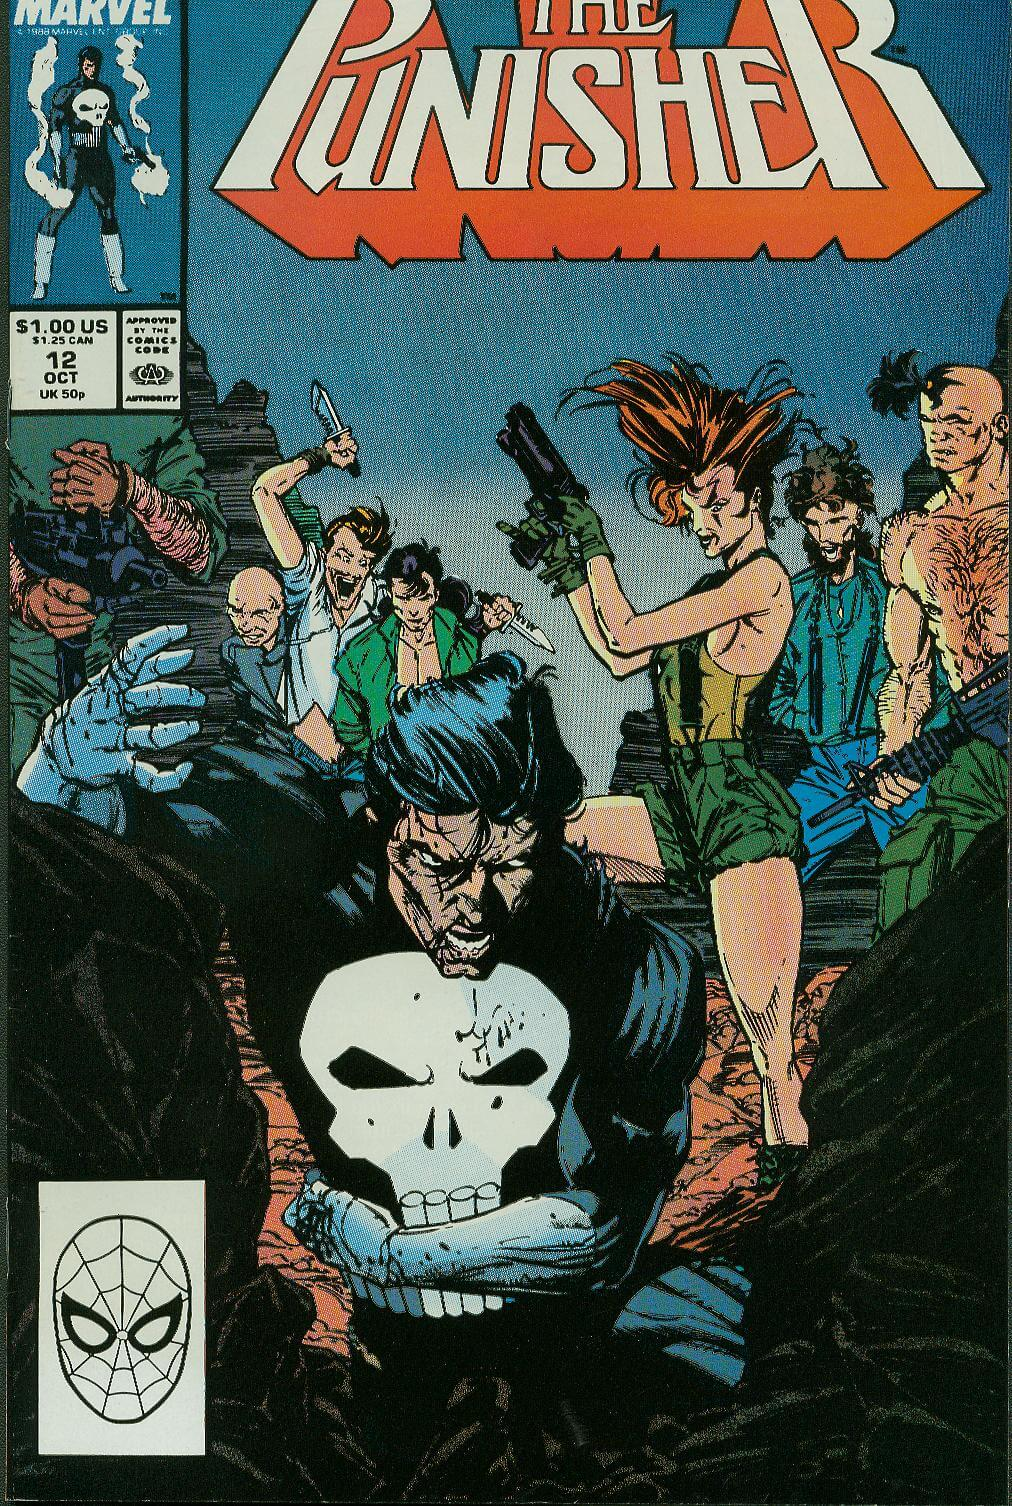 The Punisher Vol 2 #12